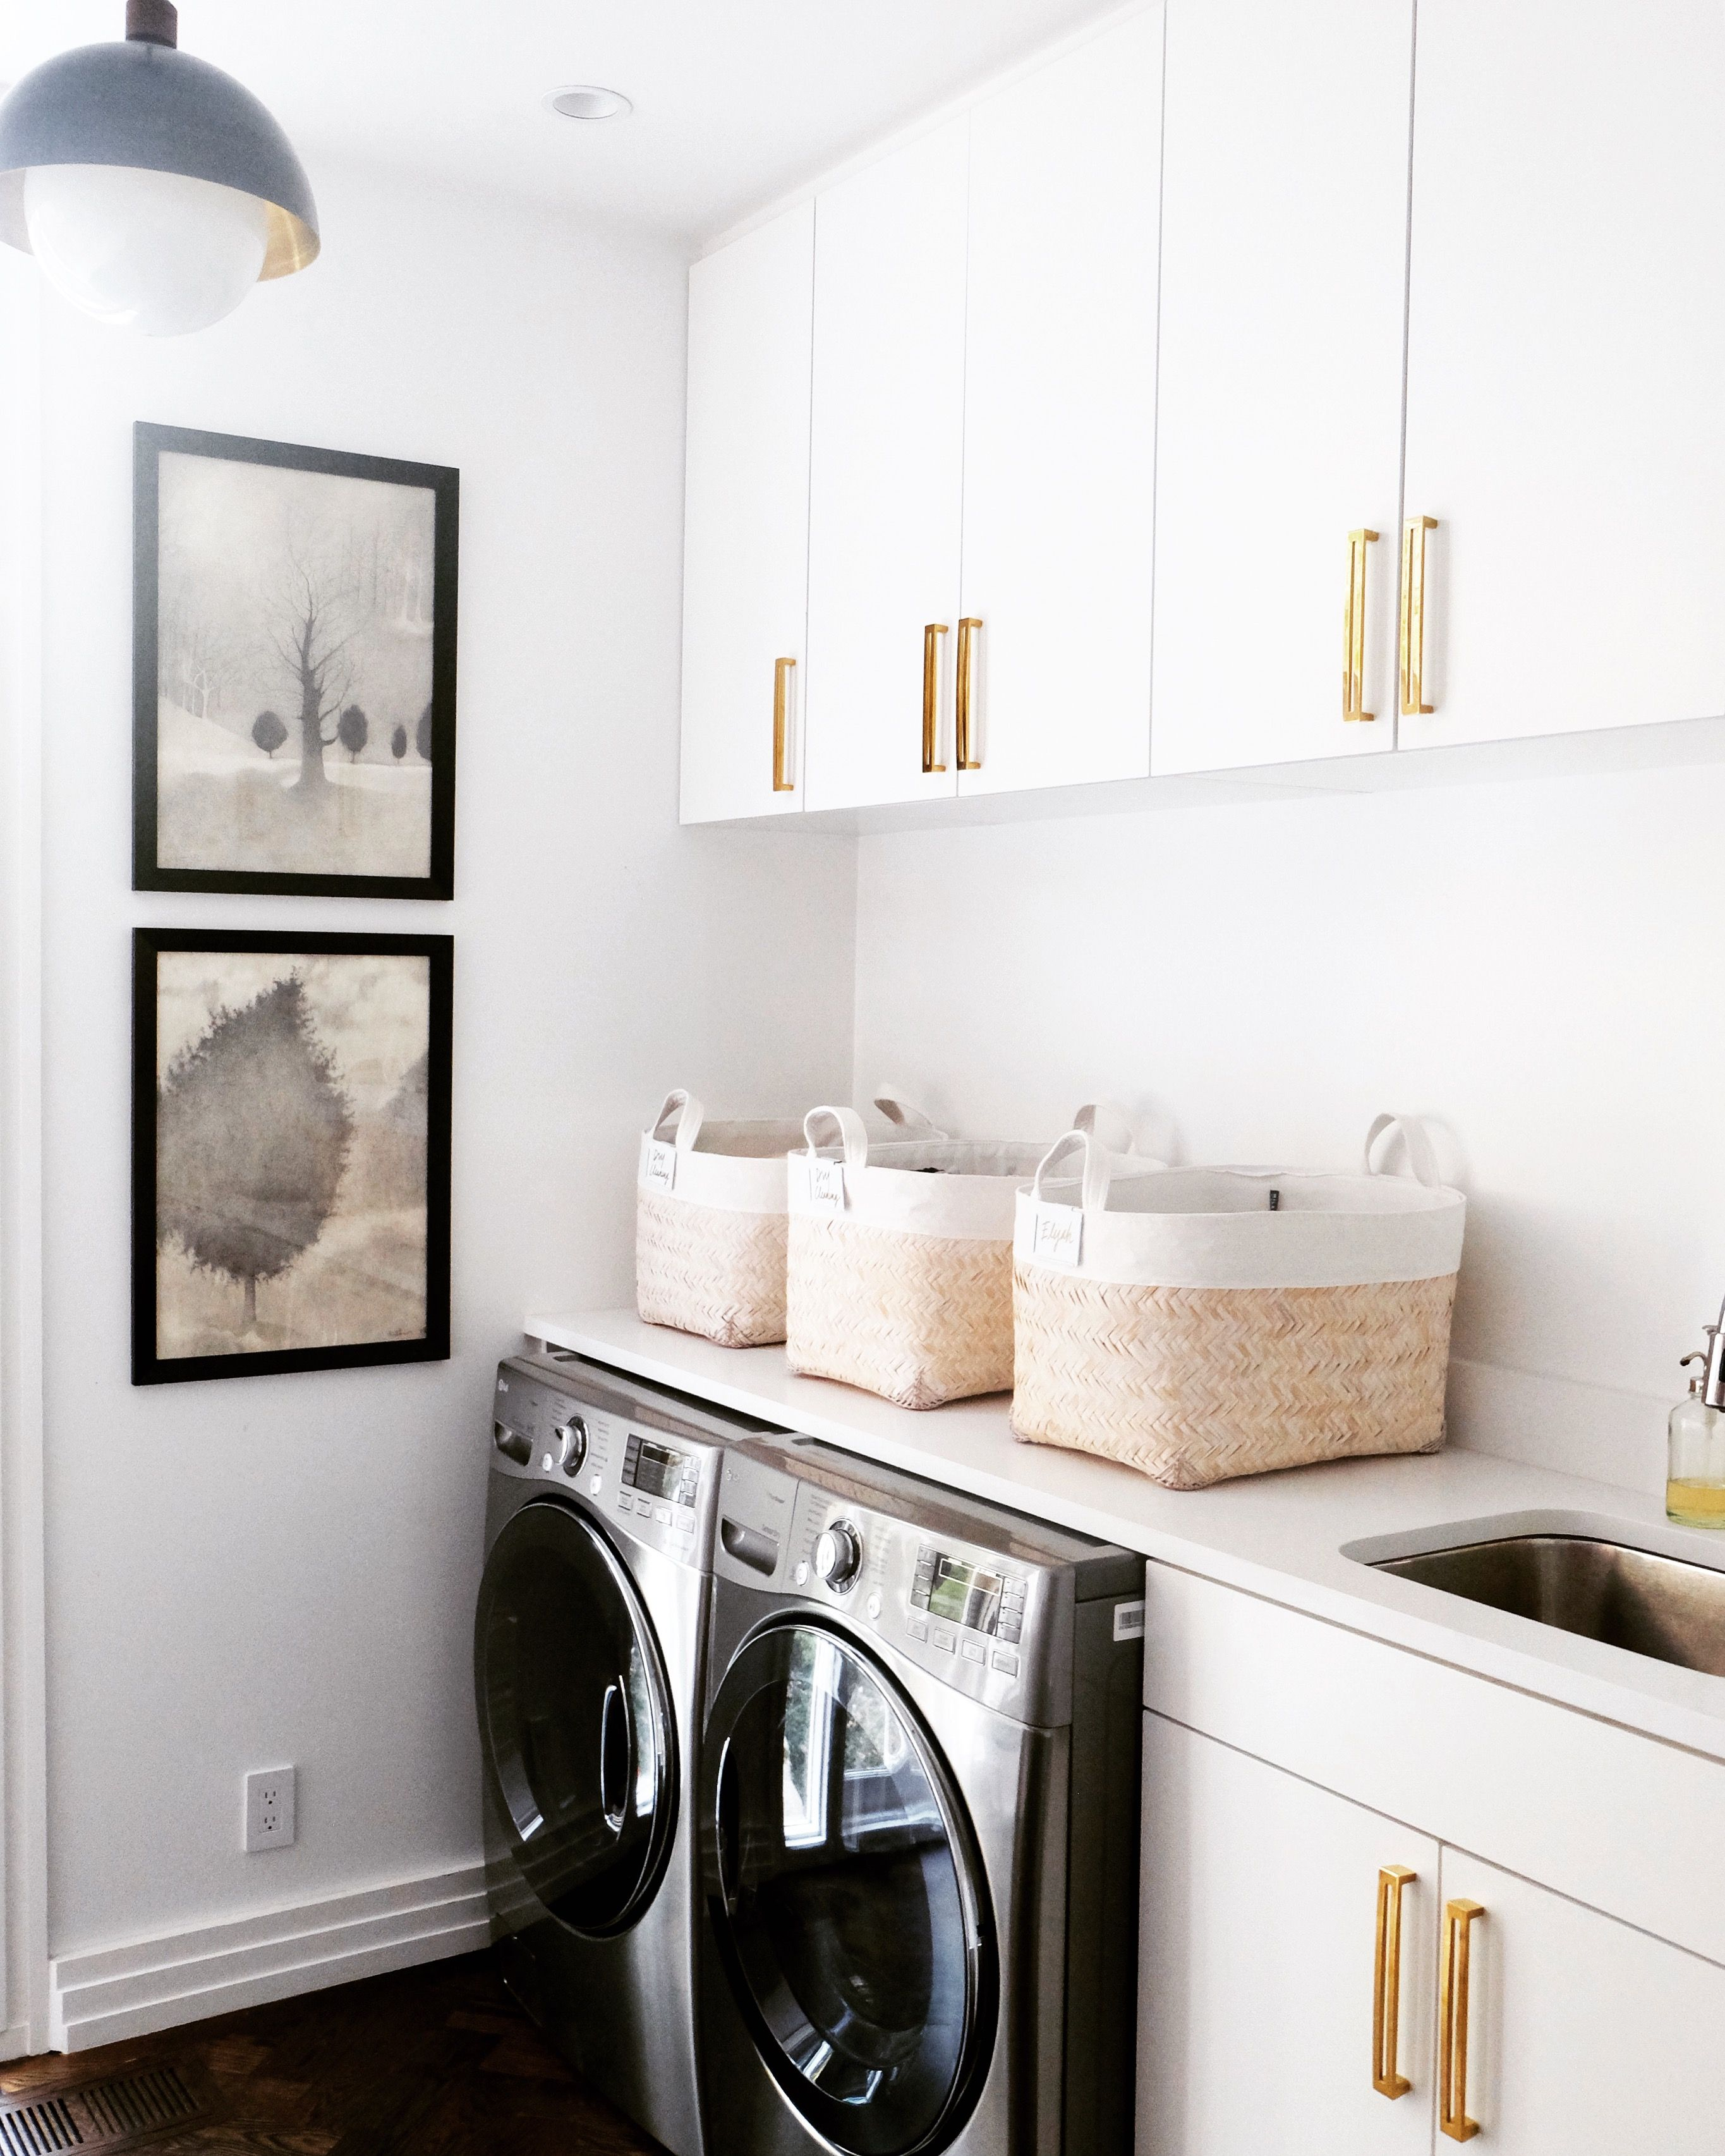 Baskets For Laundry Room Sit In Dryer Put Detergent Sixteen And Dryer Sheets In Washing White Laundry Rooms Laundry Room Organization Modern Laundry Rooms